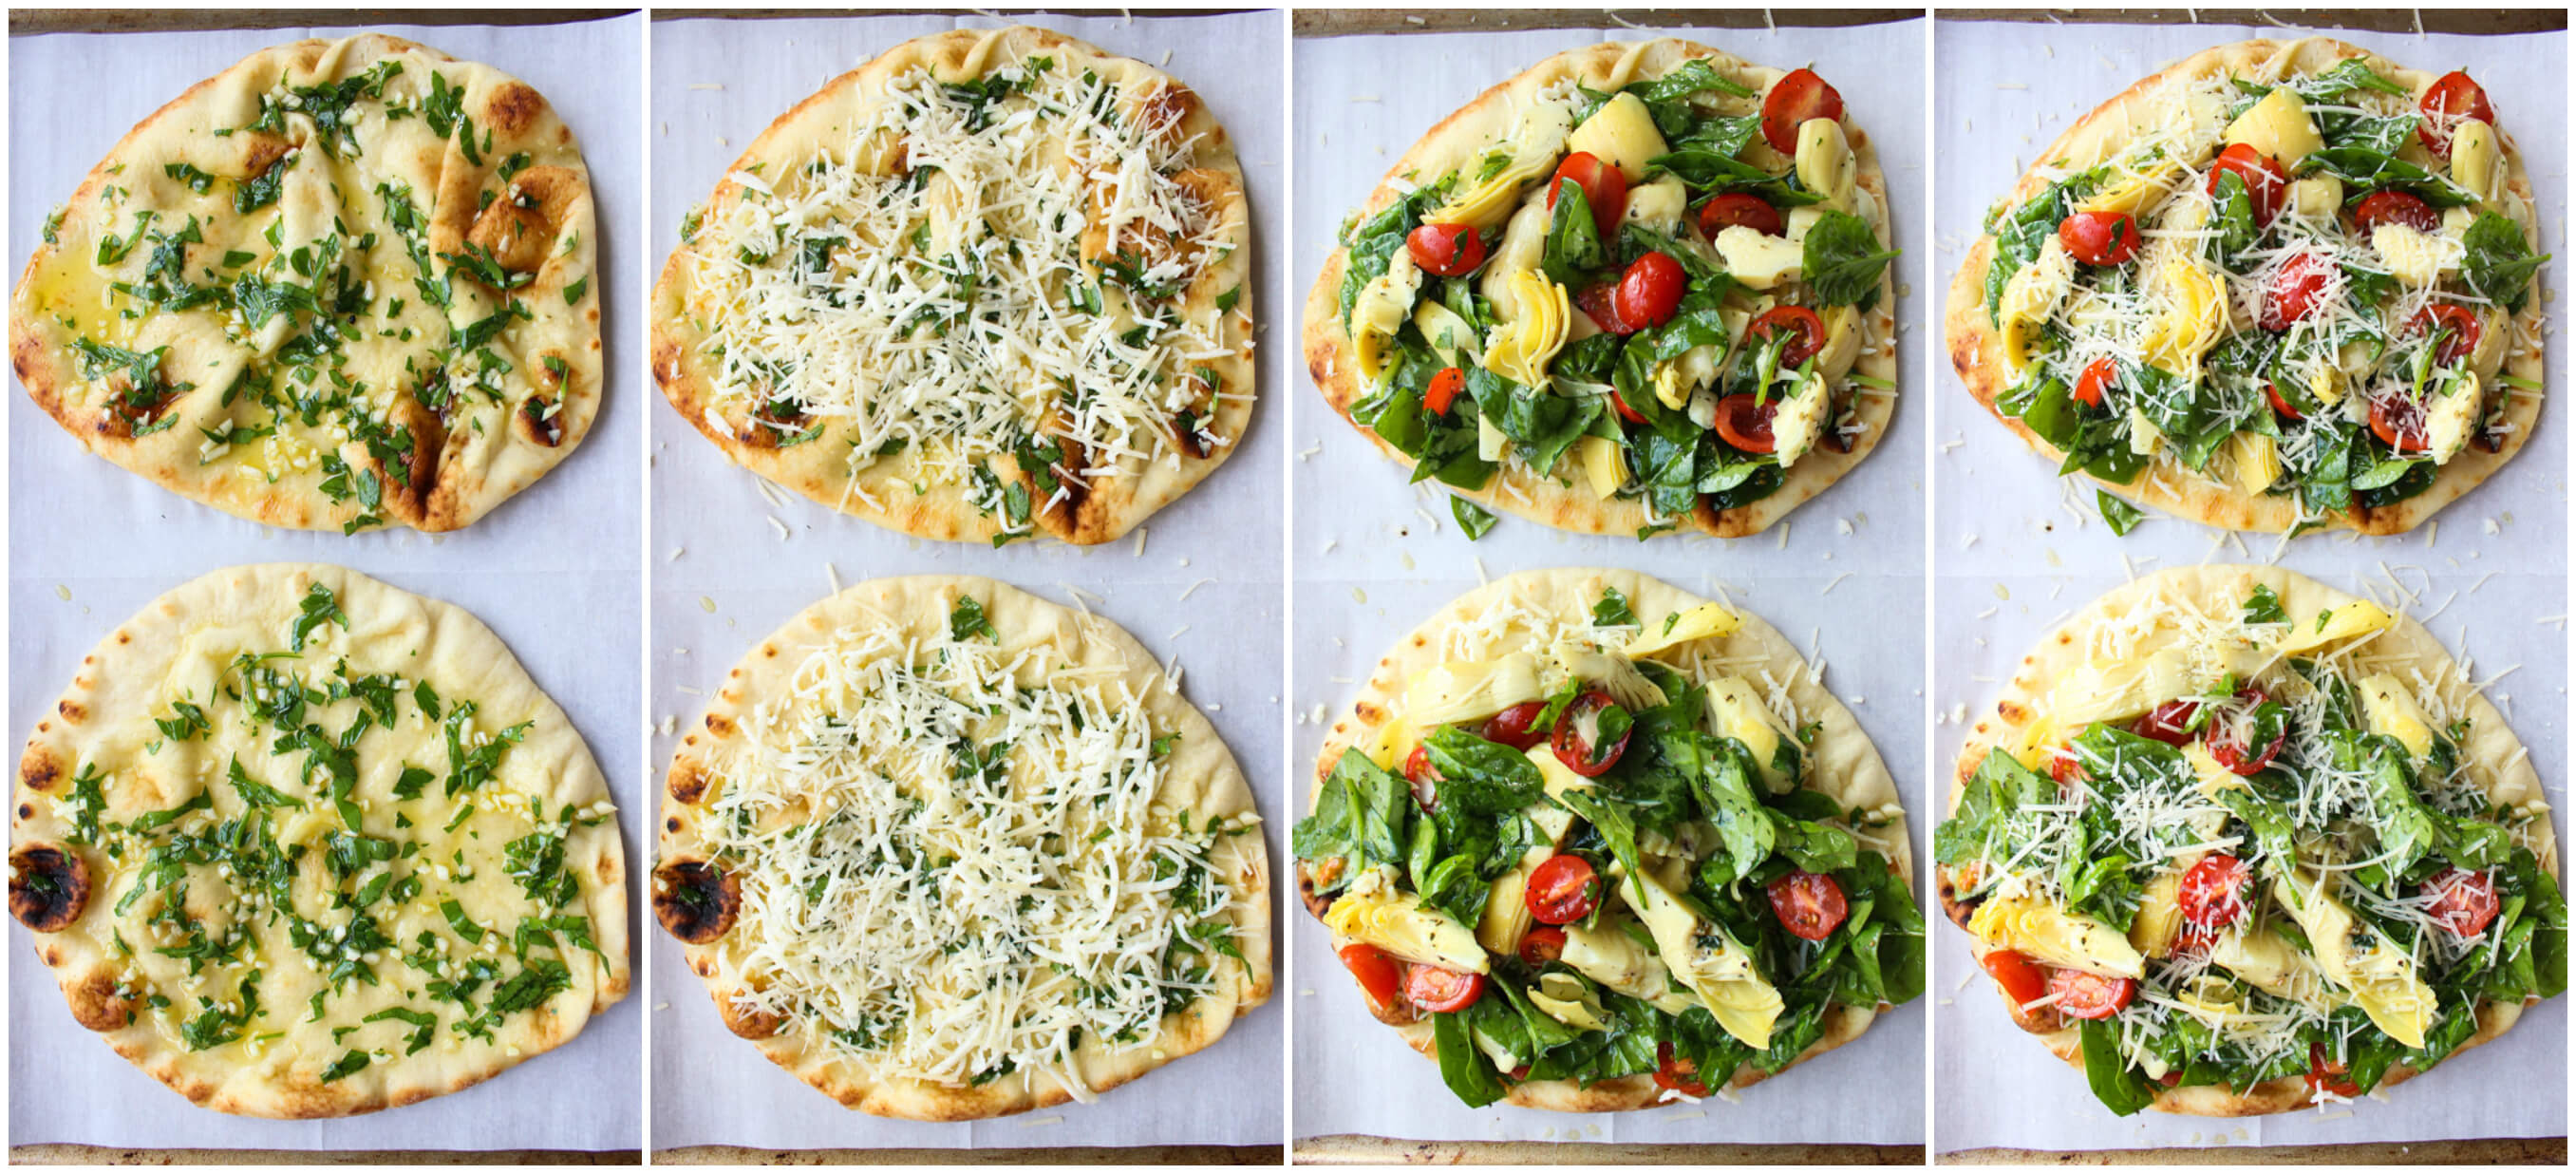 Artichoke Tomato And Spinach Flatbread